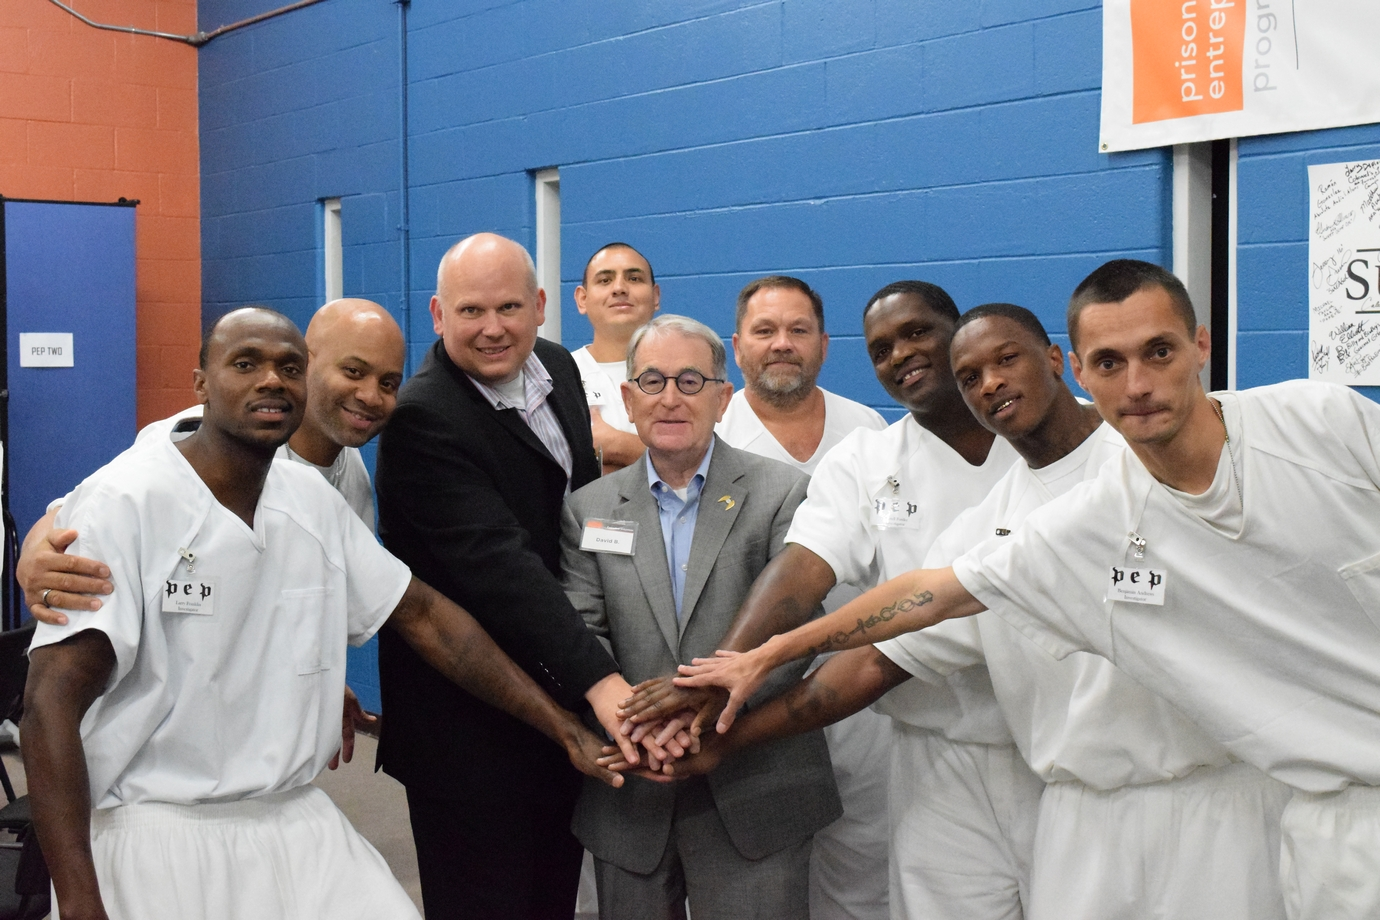 Several men, including some in prison uniforms, standing in a half circle with each man extending a hand to form a 'hand-stack'.